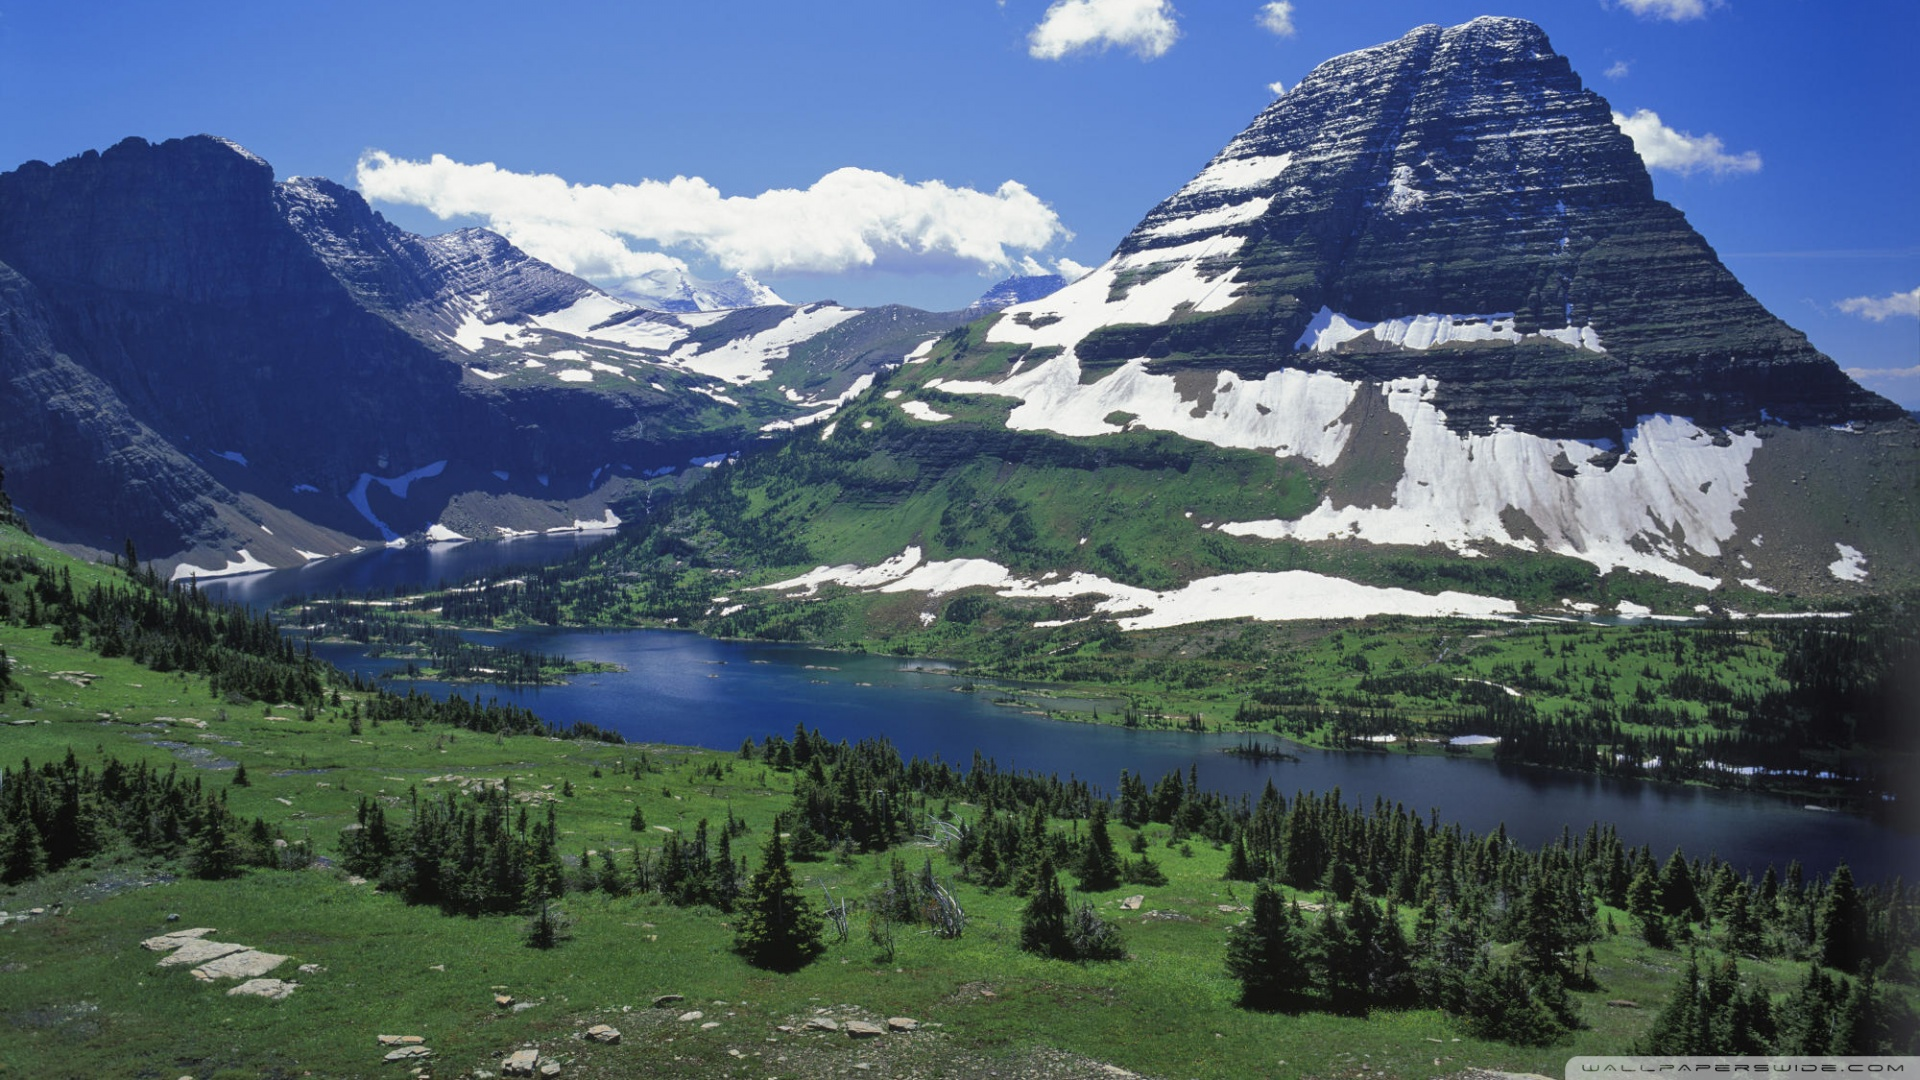 Glacier National Park Montana Wallpaper 1920x1080 Wallpoper 437220 1920x1080